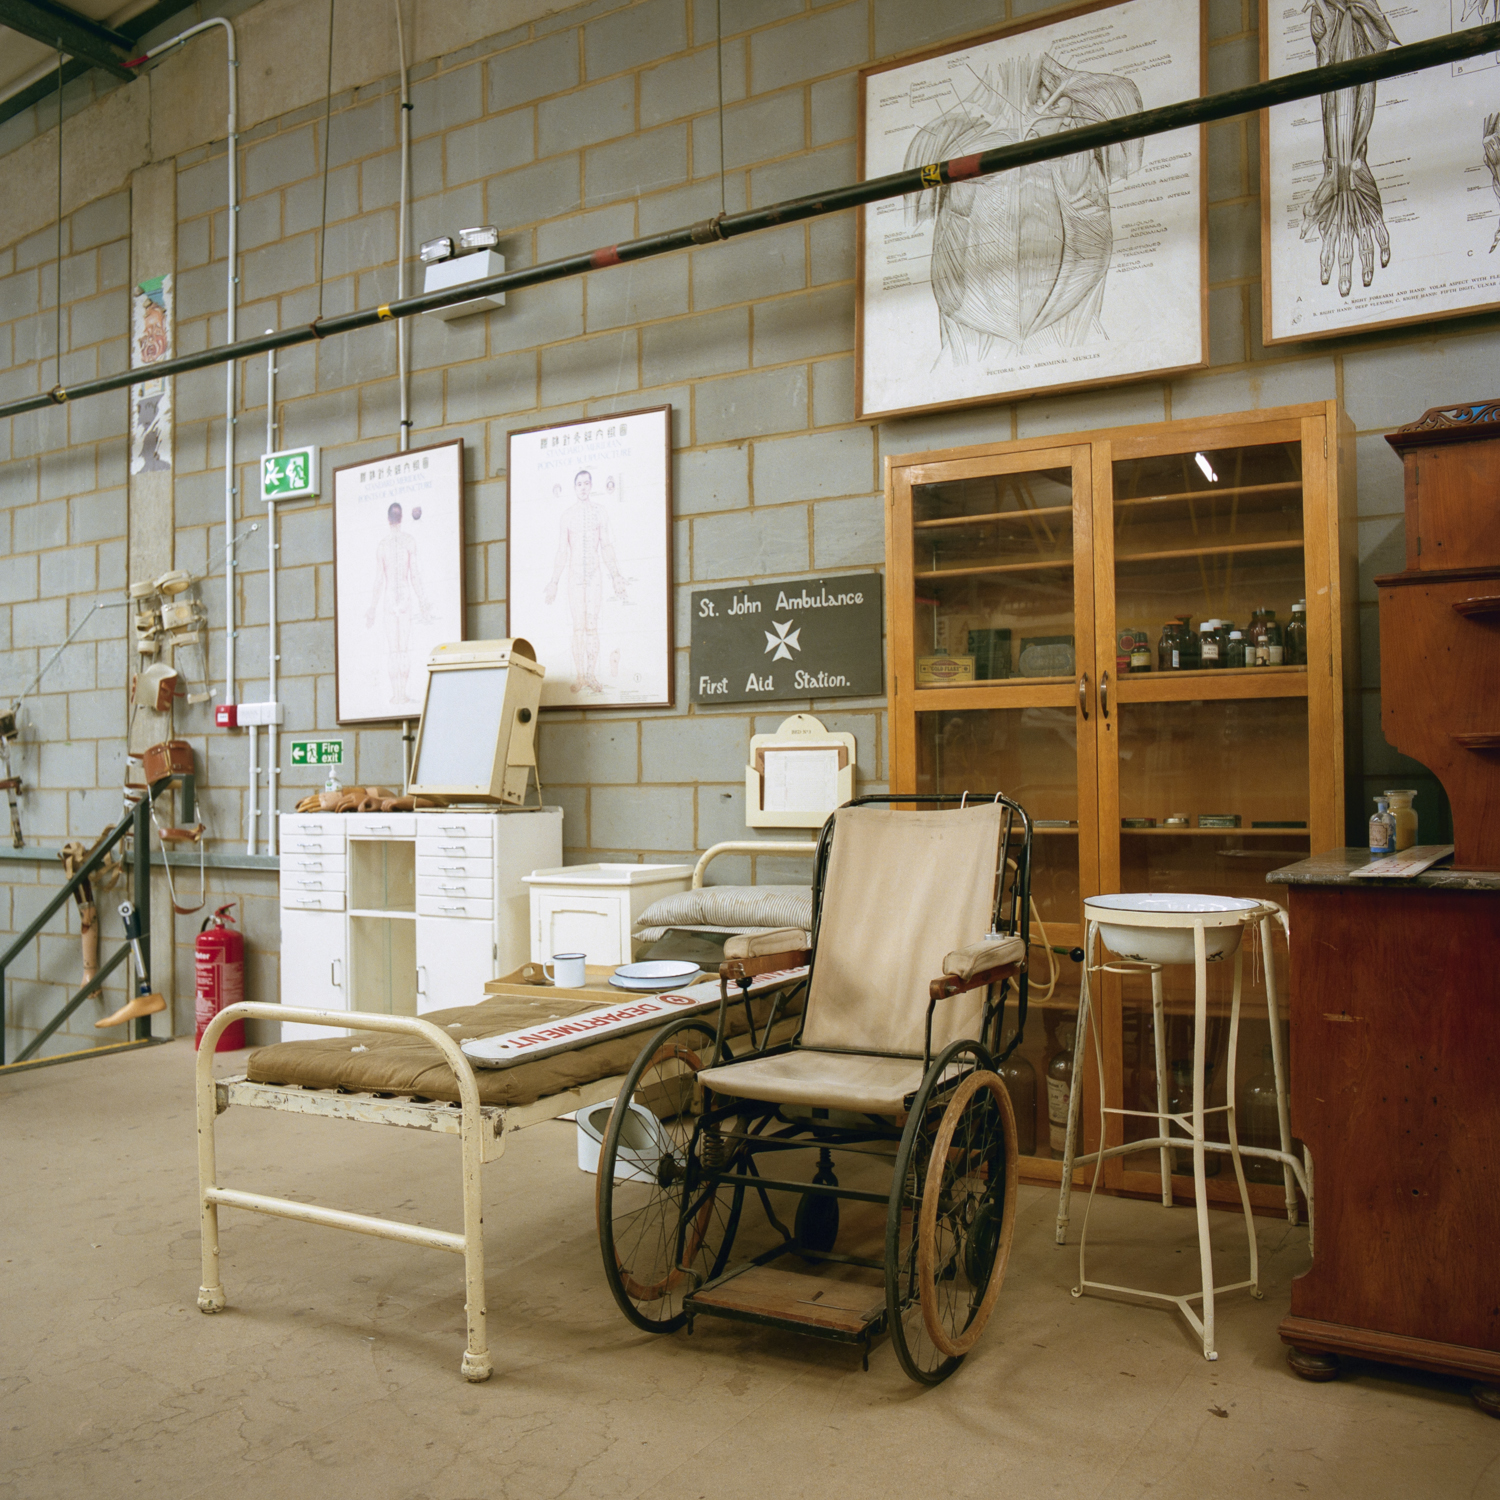 The English Patient: within the prop houses, there are mini diaramas set up like this one from a WW1 field hospital, complete with metal framed bed and wheelchair